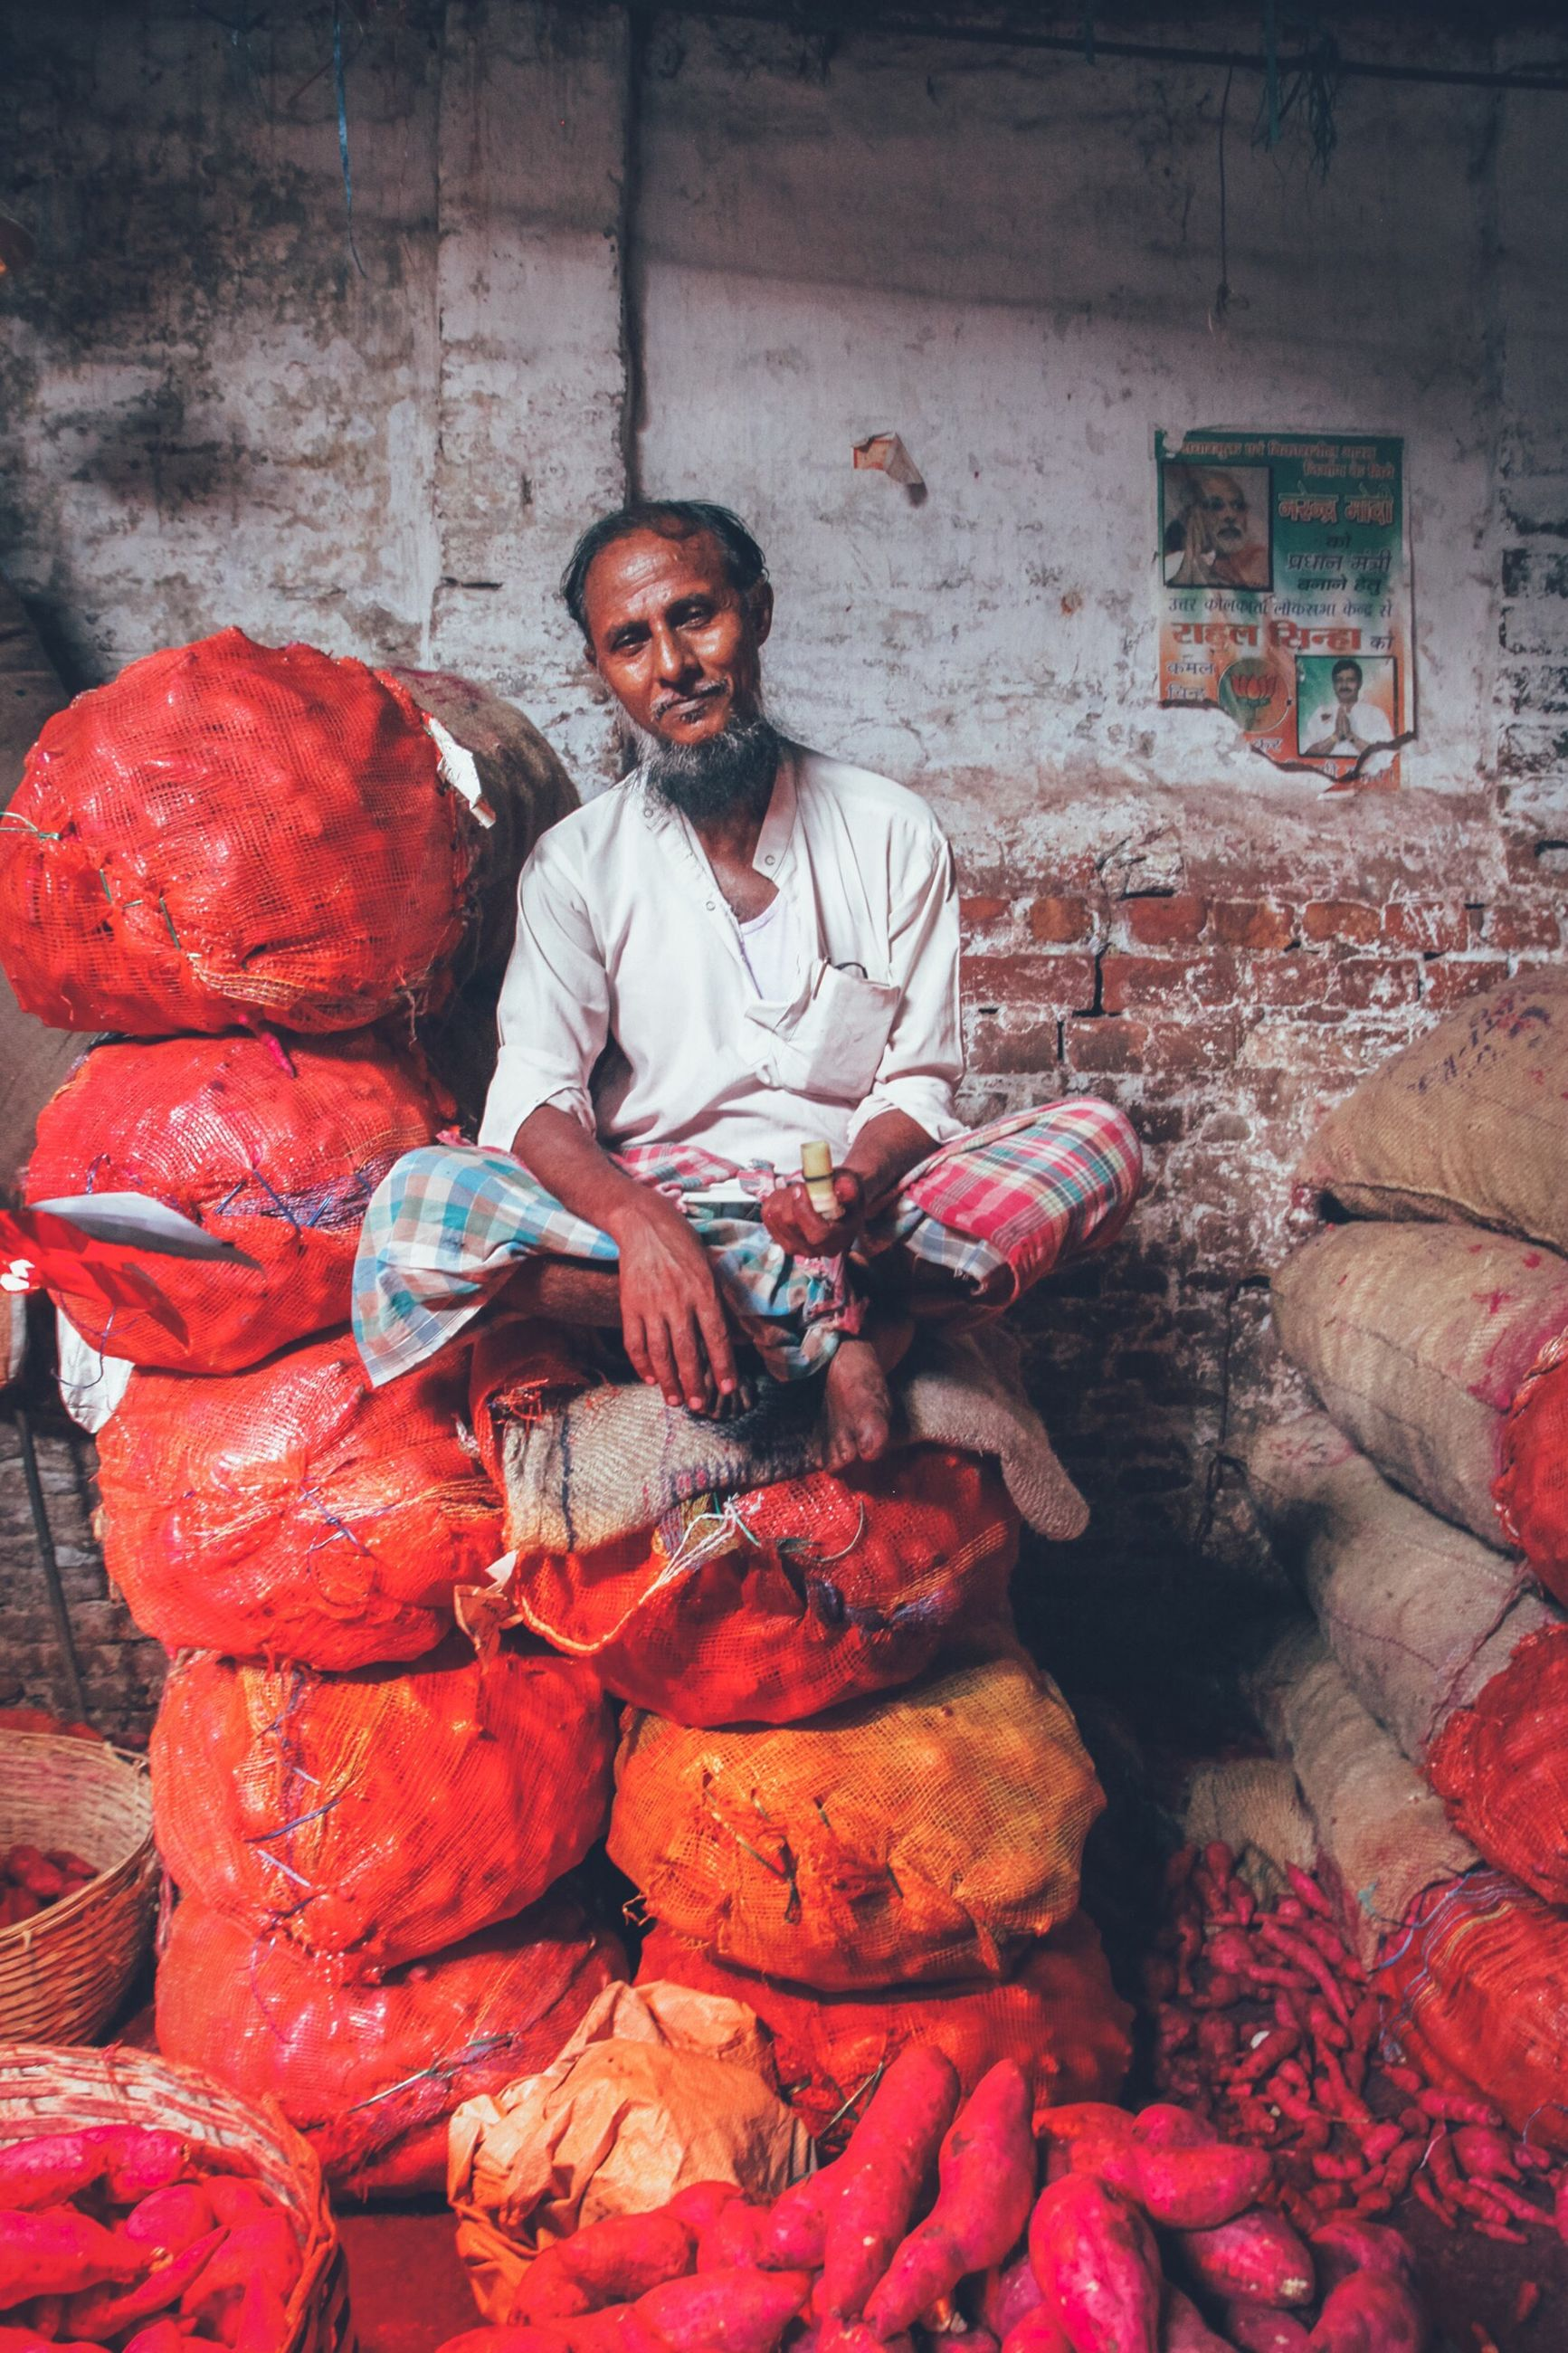 real people, small business, market vendor, portrait, adults only, one person, looking at camera, cultures, front view, market stall, selling, only men, men, one man only, business finance and industry, mature adult, occupation, market, working, people, adult, indoors, freshness, butcher, day